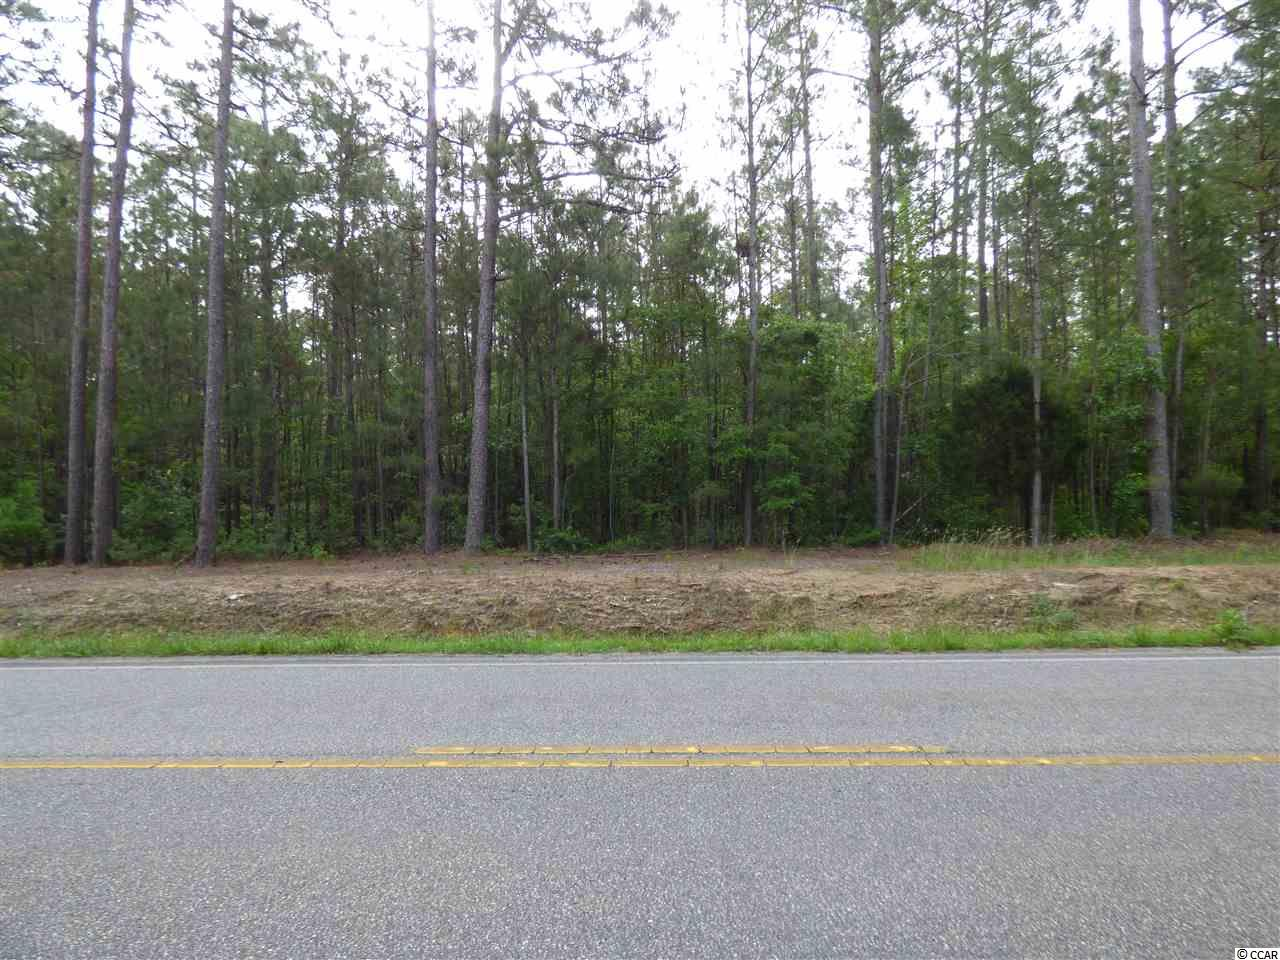 """Looking for space...this is it! Come and build your dream home, spread out and enjoy this ideal """"estate sized lot"""" in Little River, a wonderful wooded large lot. No HOA, stick built homes only. Quiet and secluded and yet right in the heart of everything! Easy access to Little River and Calabash, boating and golf course communities surround this little gem and only 15 minutes to the beach and all the beach activities. 300 feet of road front access."""